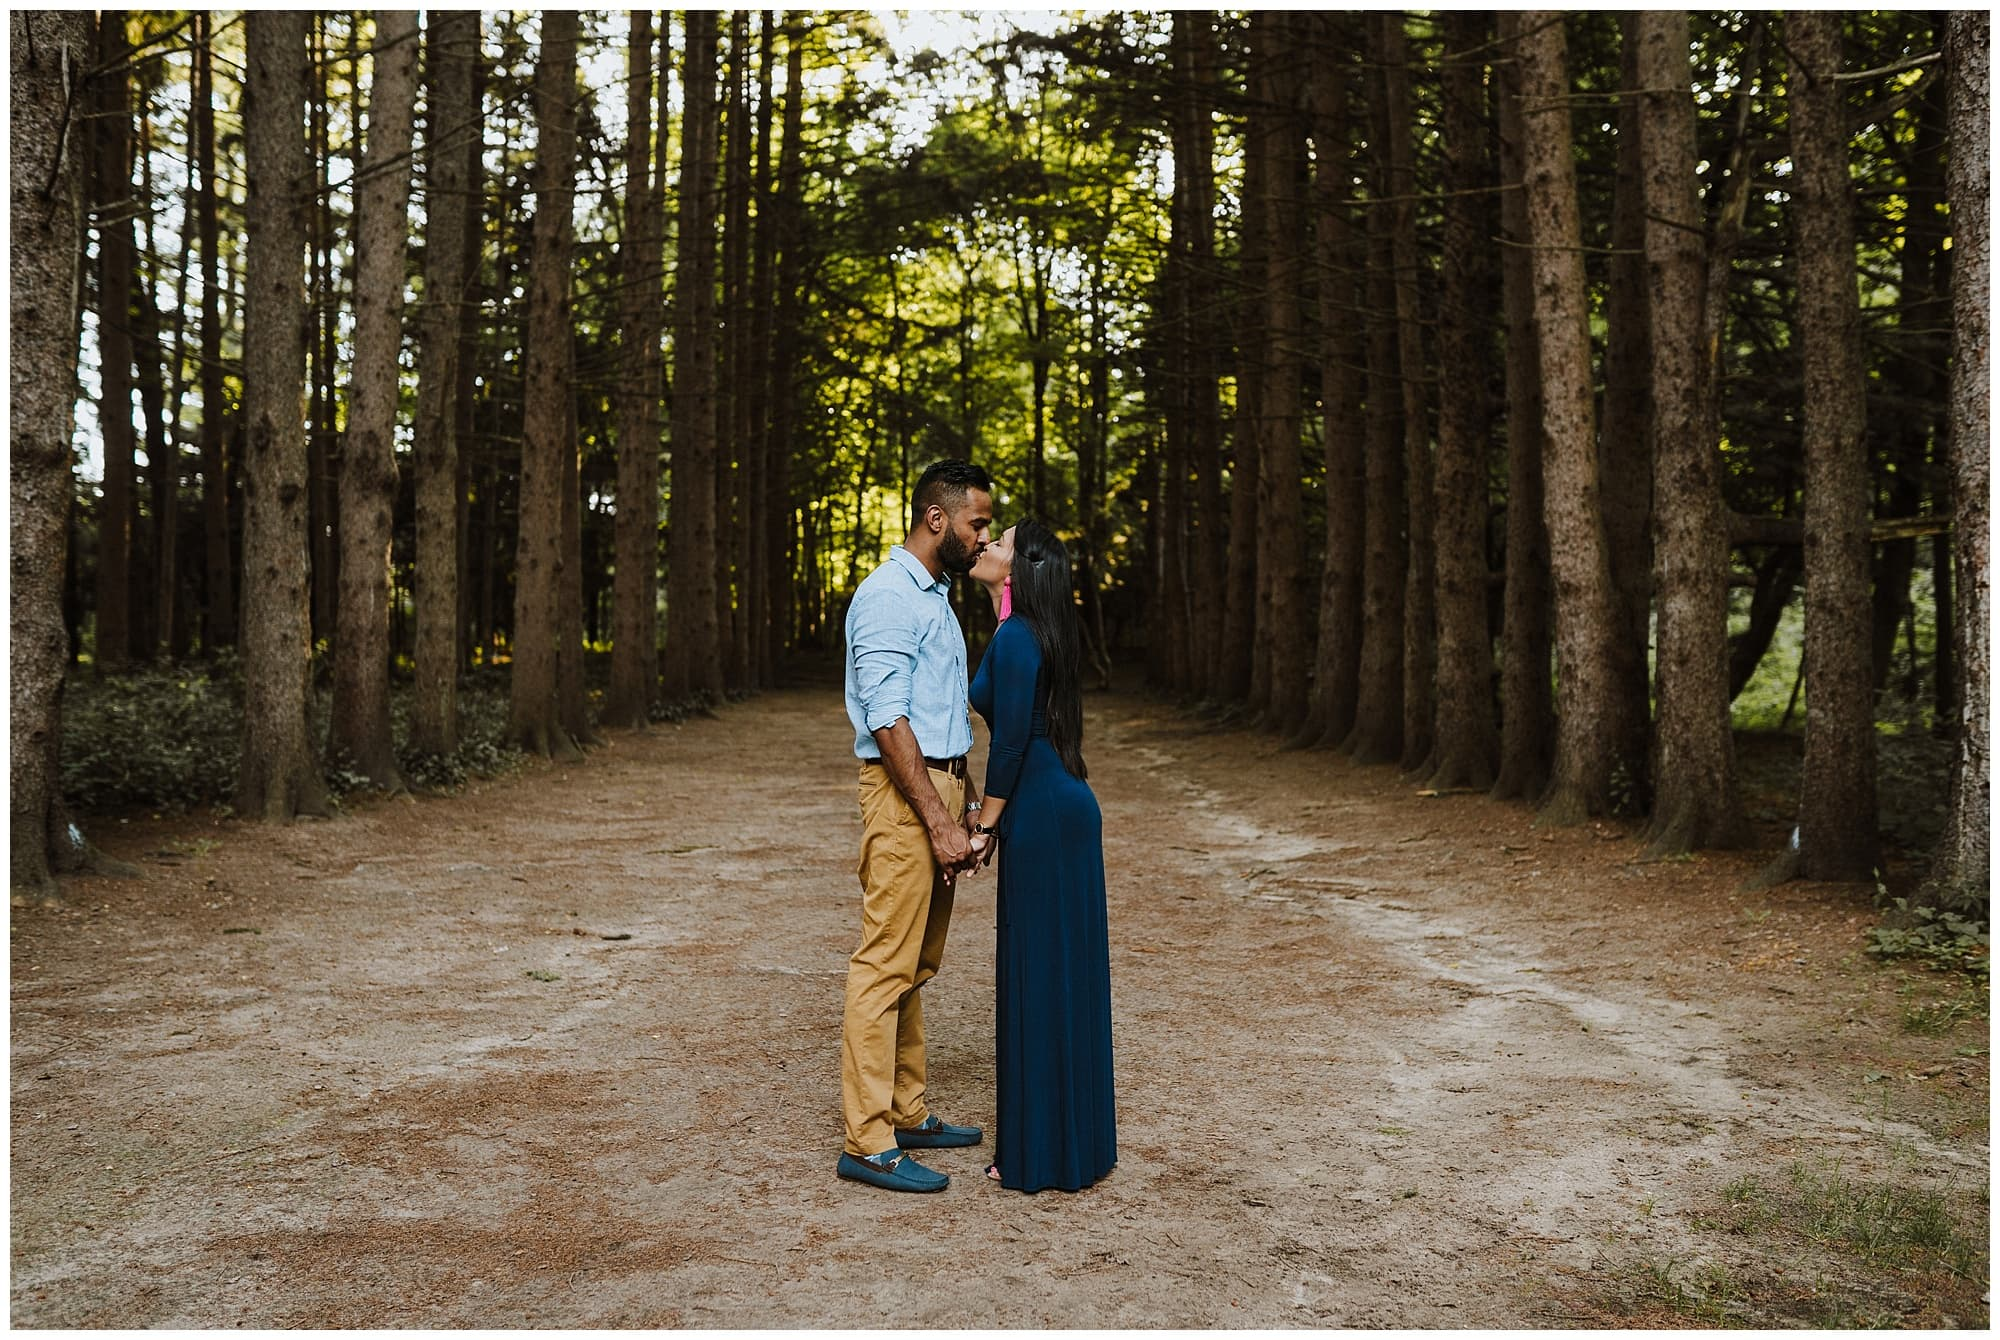 Summer Stony Creek Engagement Session-8.JPG